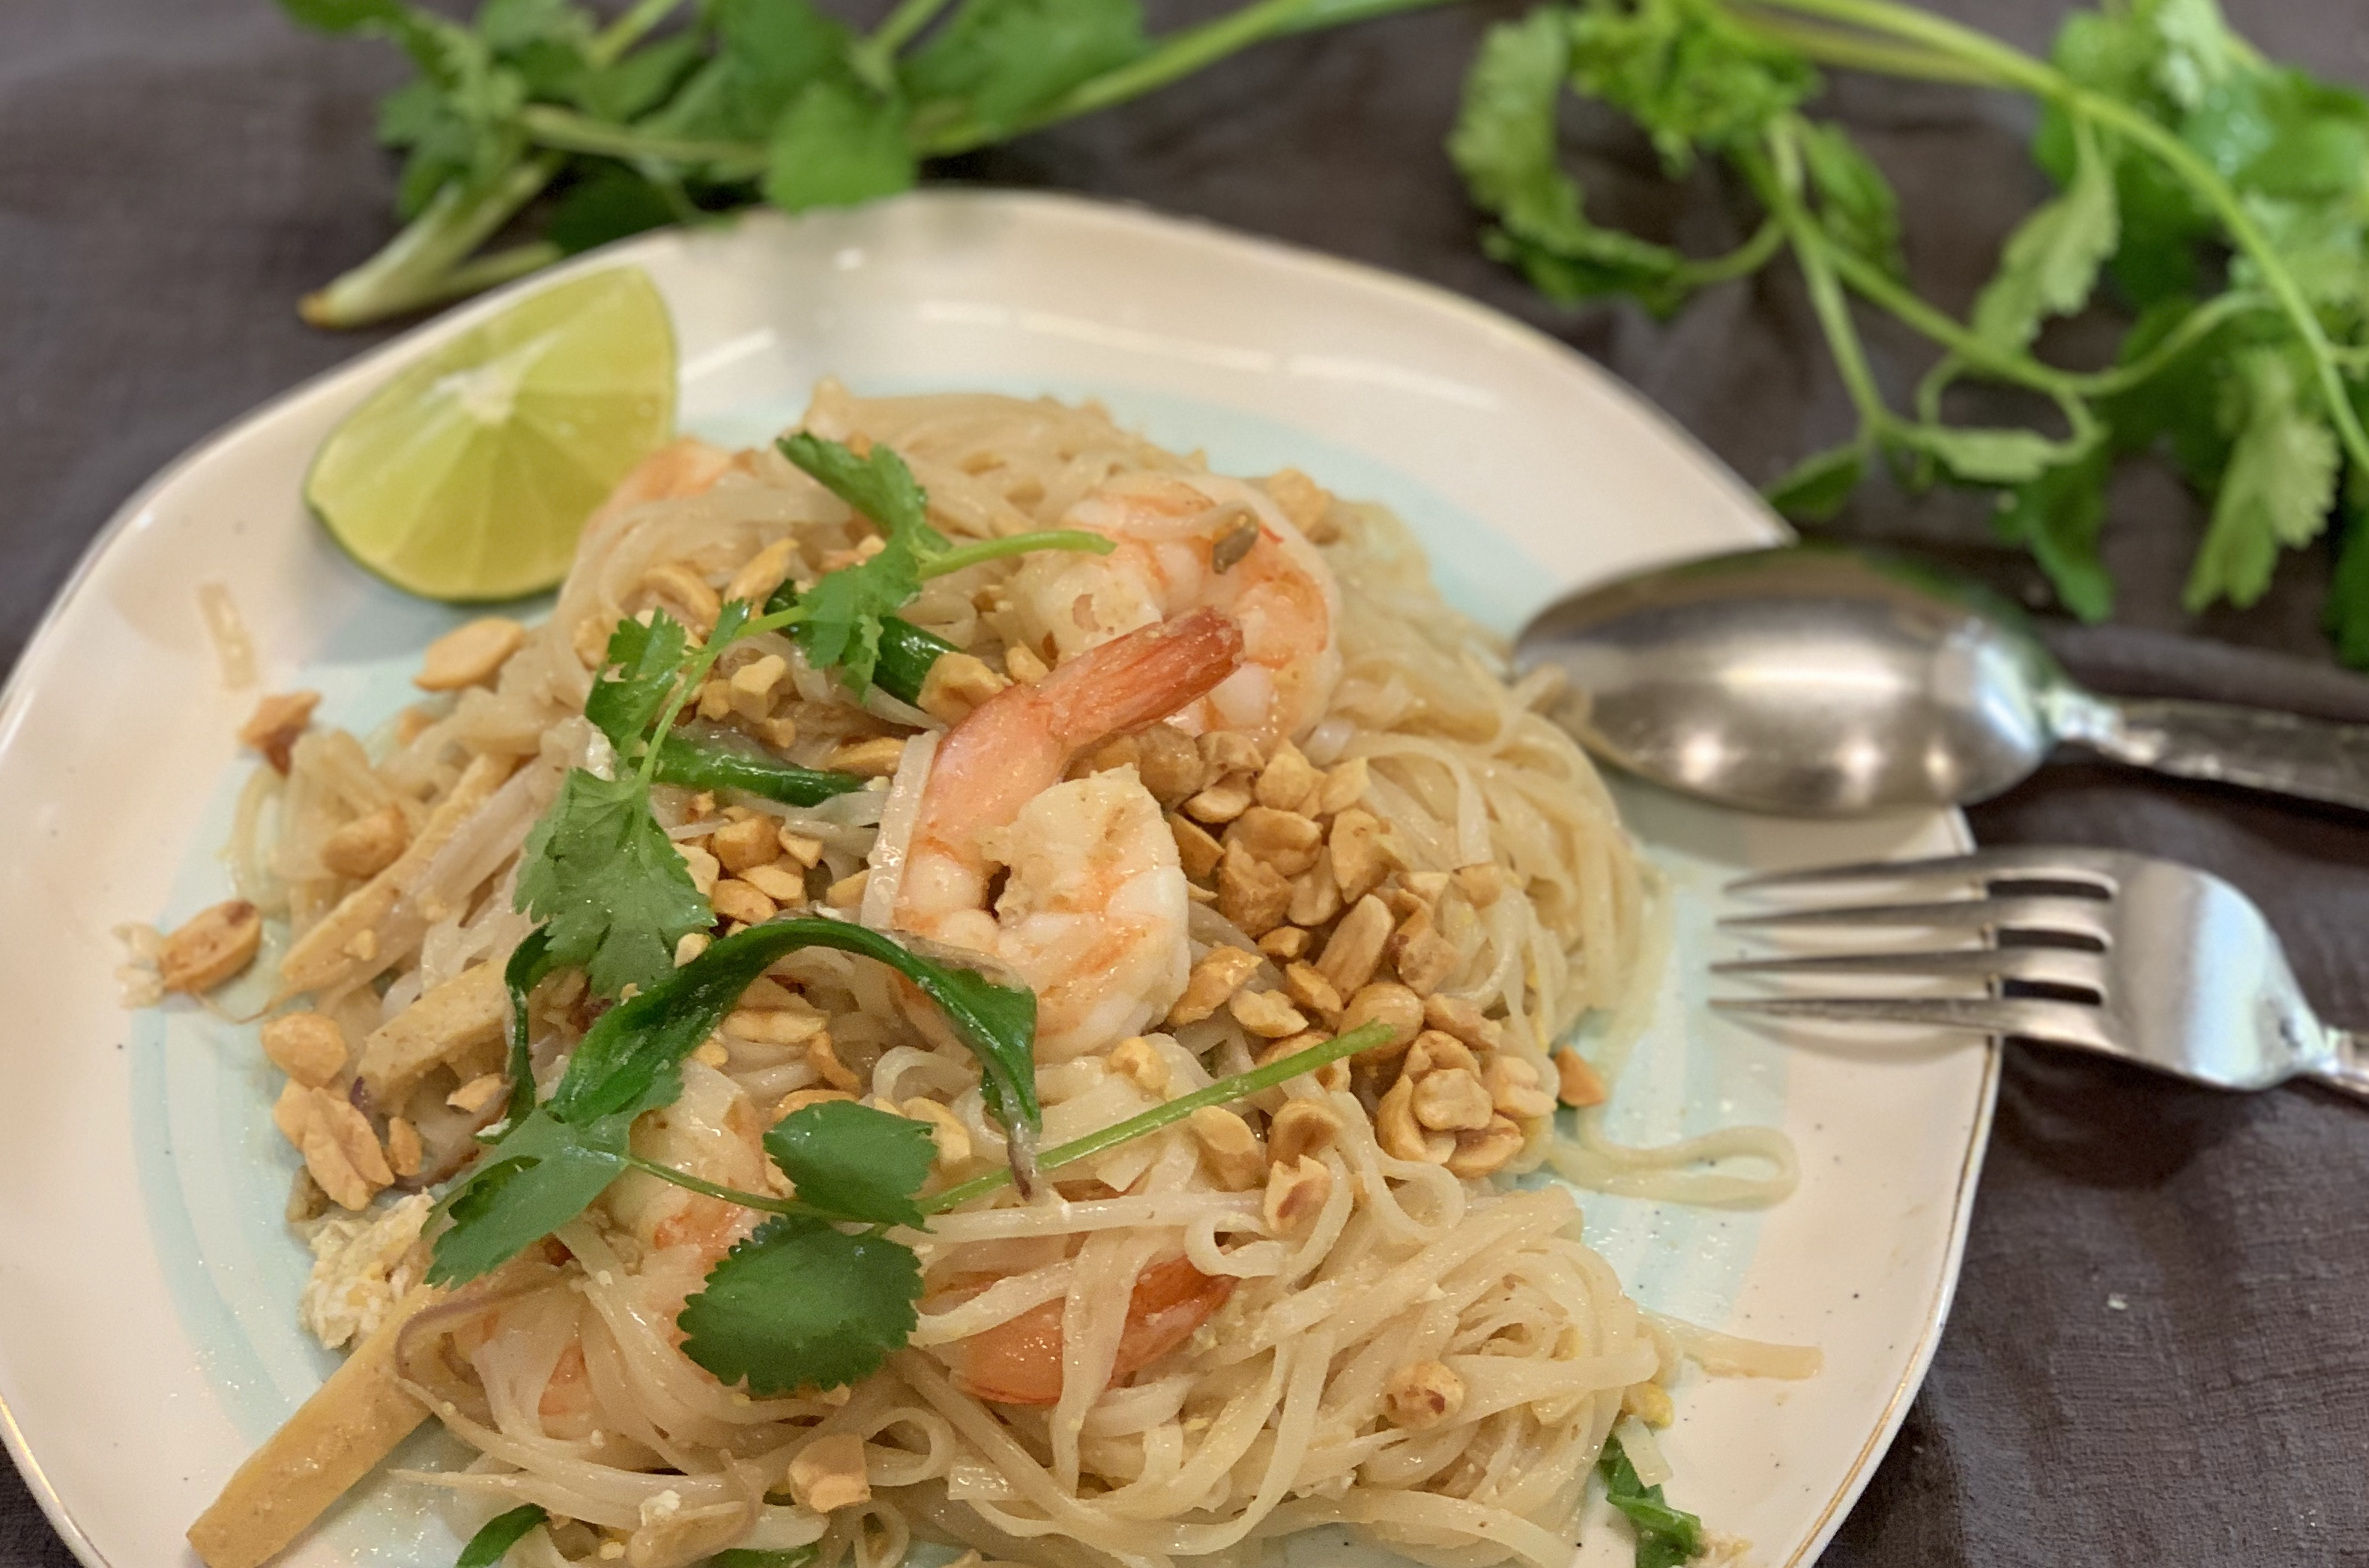 Shrimp Pad Thai泰式炒河粉tài shì chǎo hé fěn